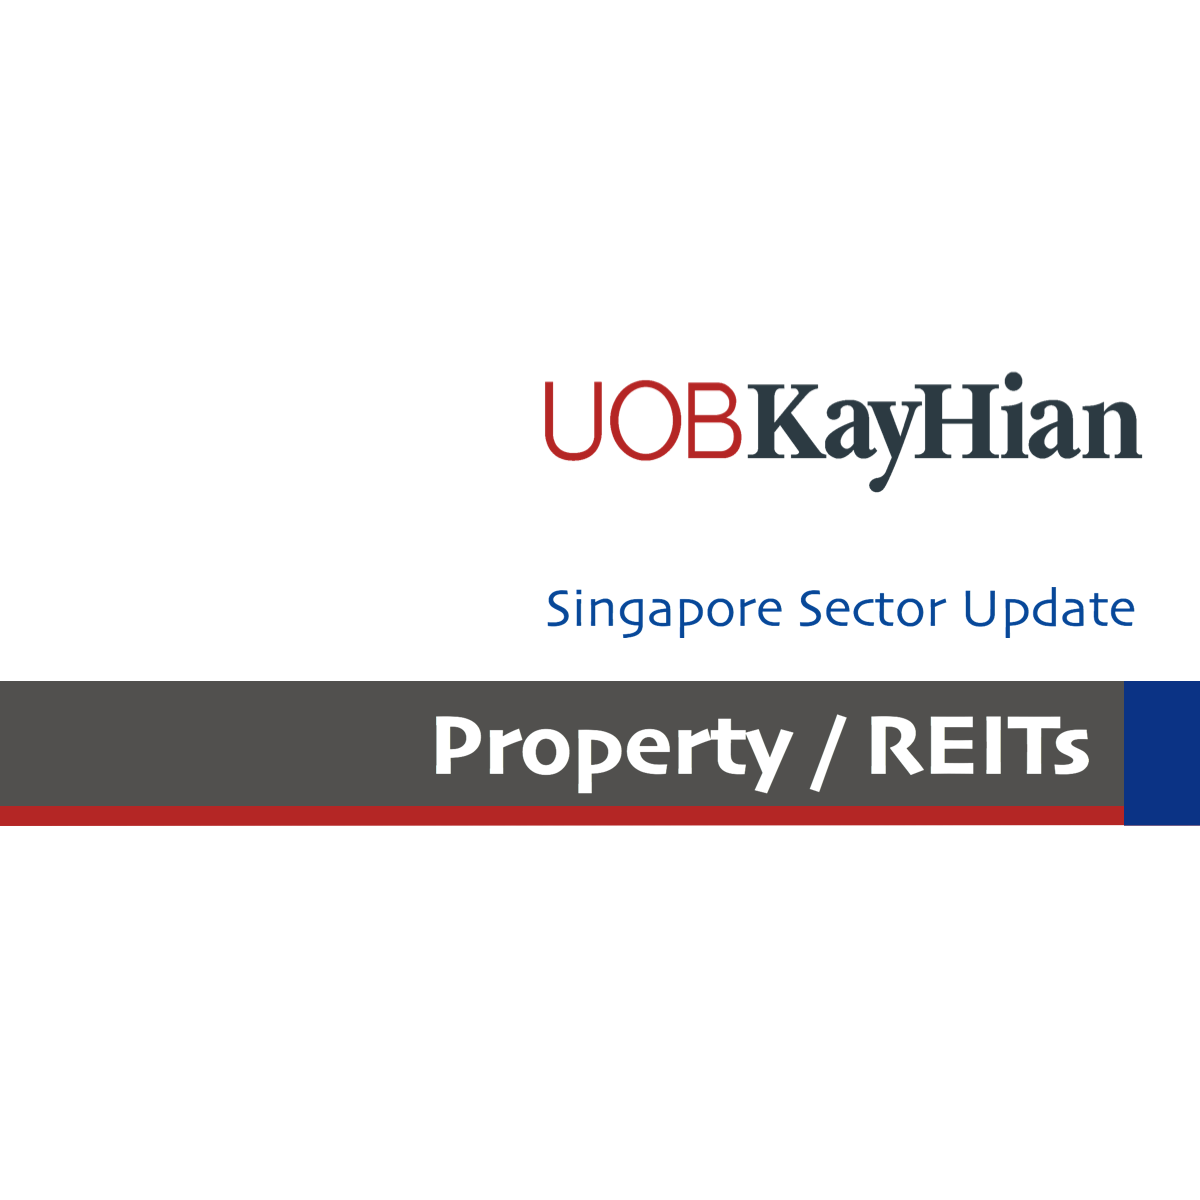 Singapore REITs - UOB Kay Hian 2017-05-25: Rosier Economic Outlook, S-REITs In The Spotlight?